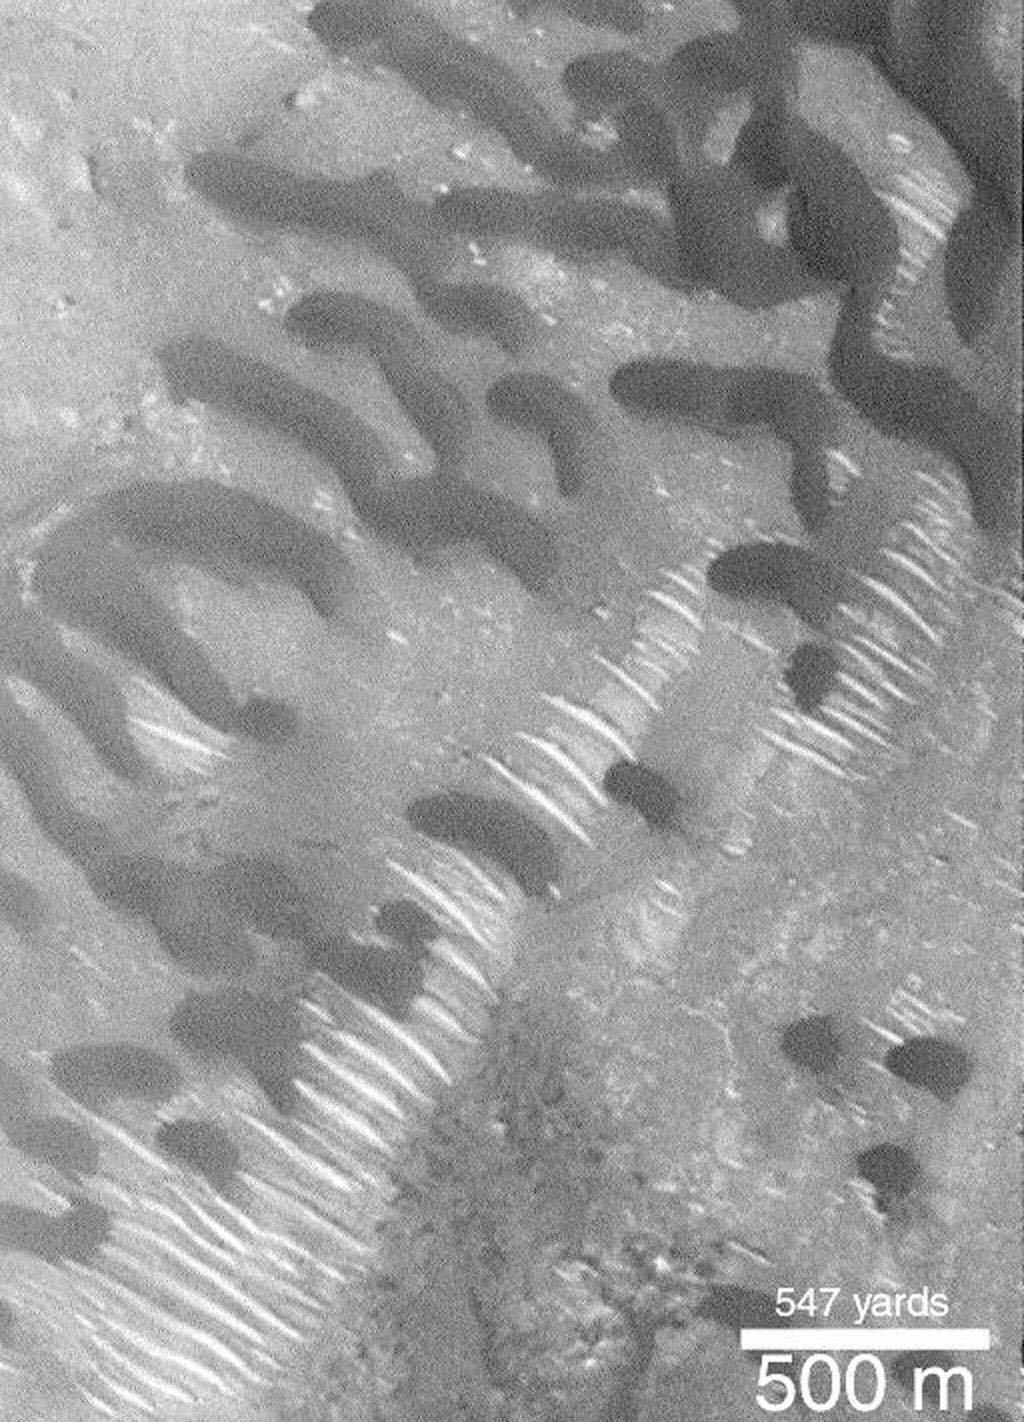 NASA's Mars Global Surveyor shows dark and somewhat crescent-shaped dunes on Mars.